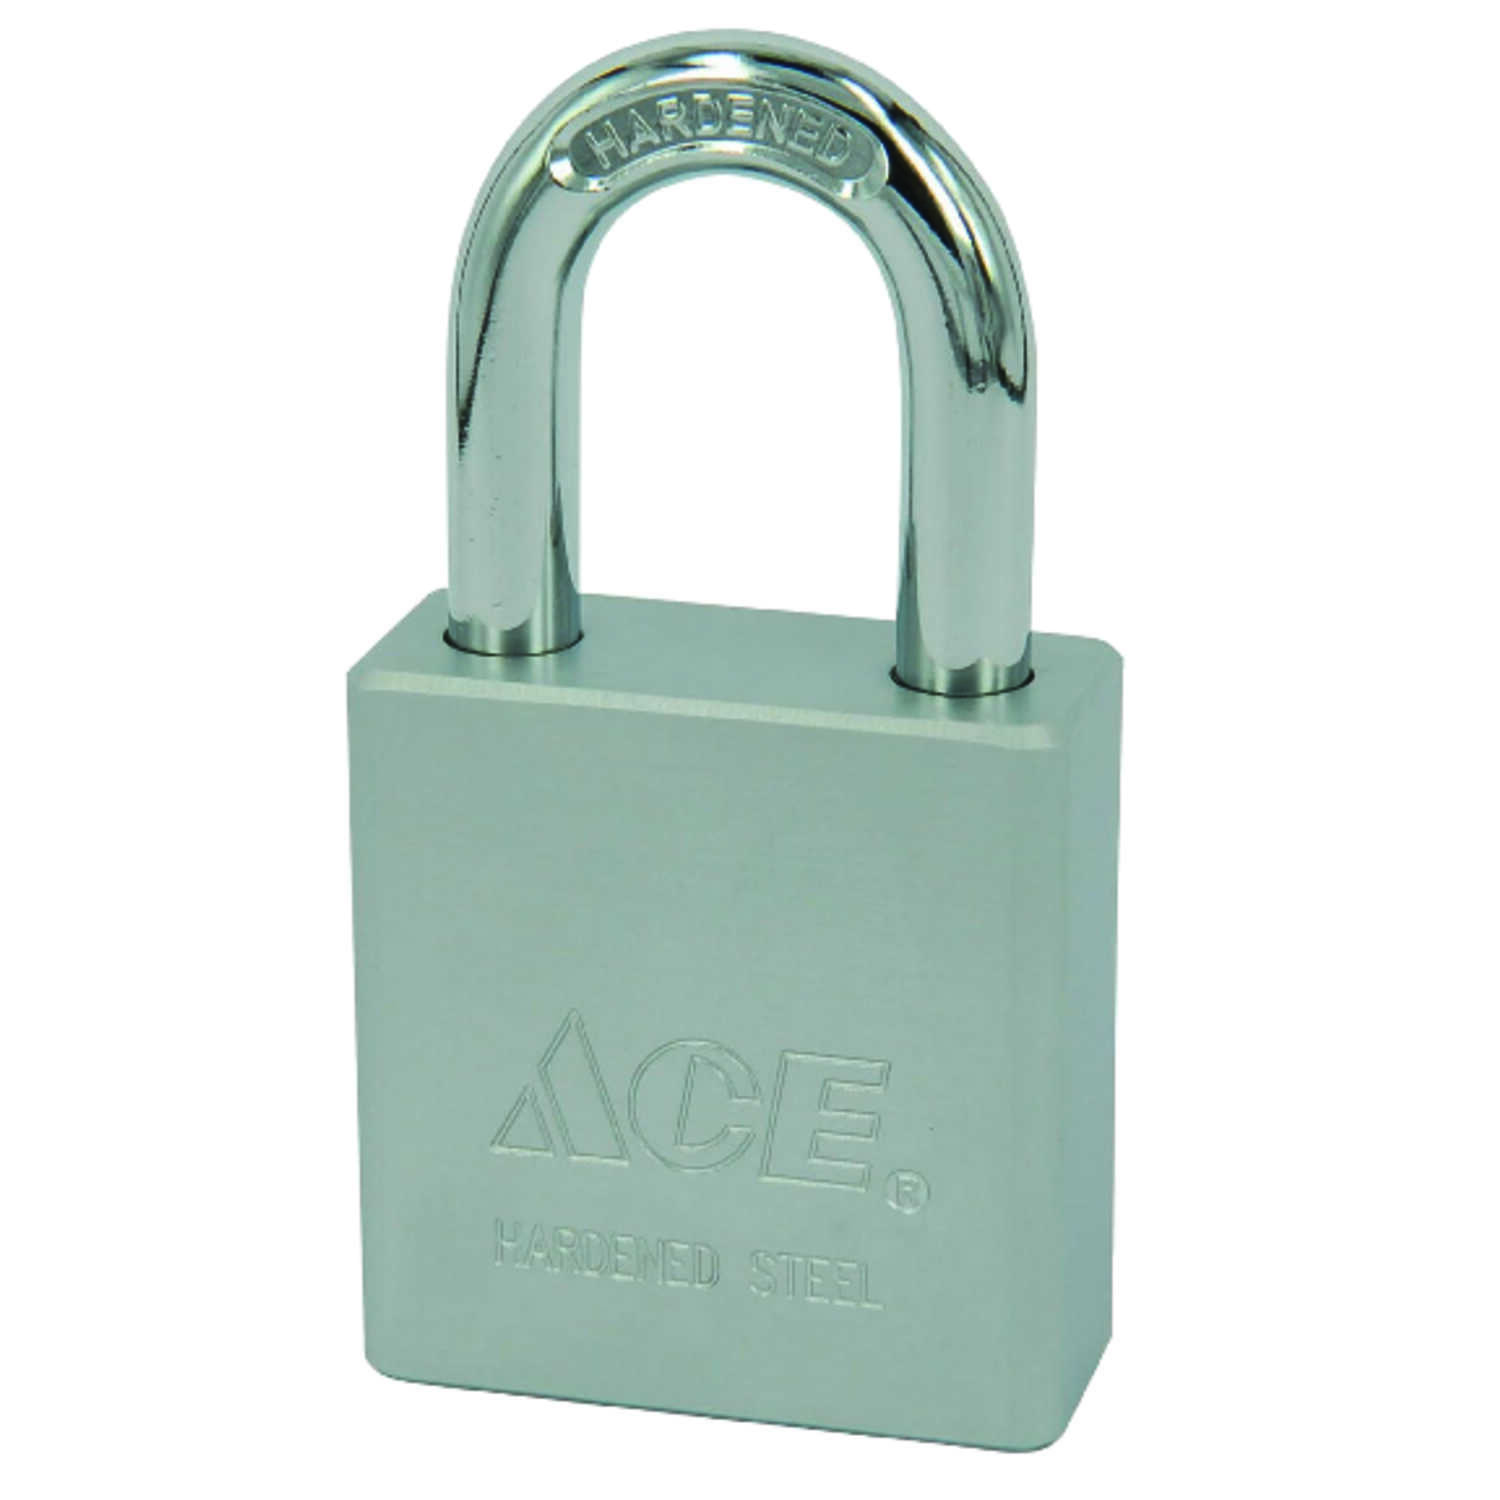 Ace  1-13/16 in. H x 1-3/4 in. W x 3/4 in. L Steel  Double Locking  Padlock  1 pk